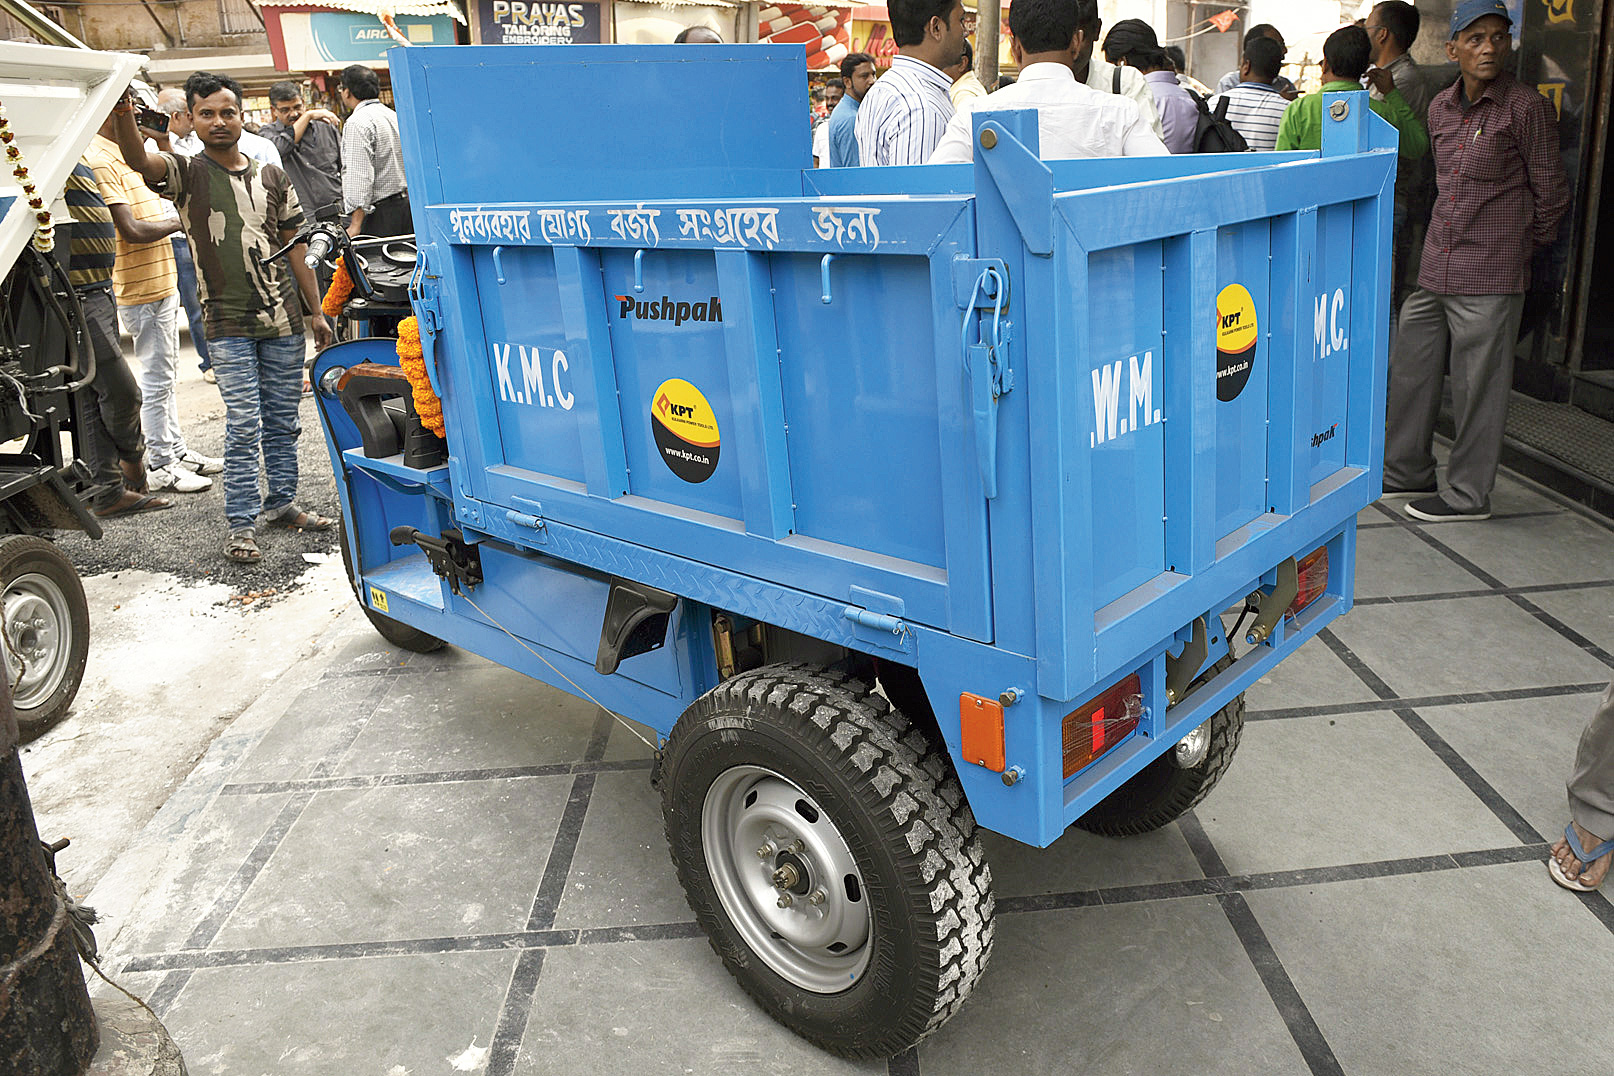 Battery-operated cars that will collect recyclable waste from households.